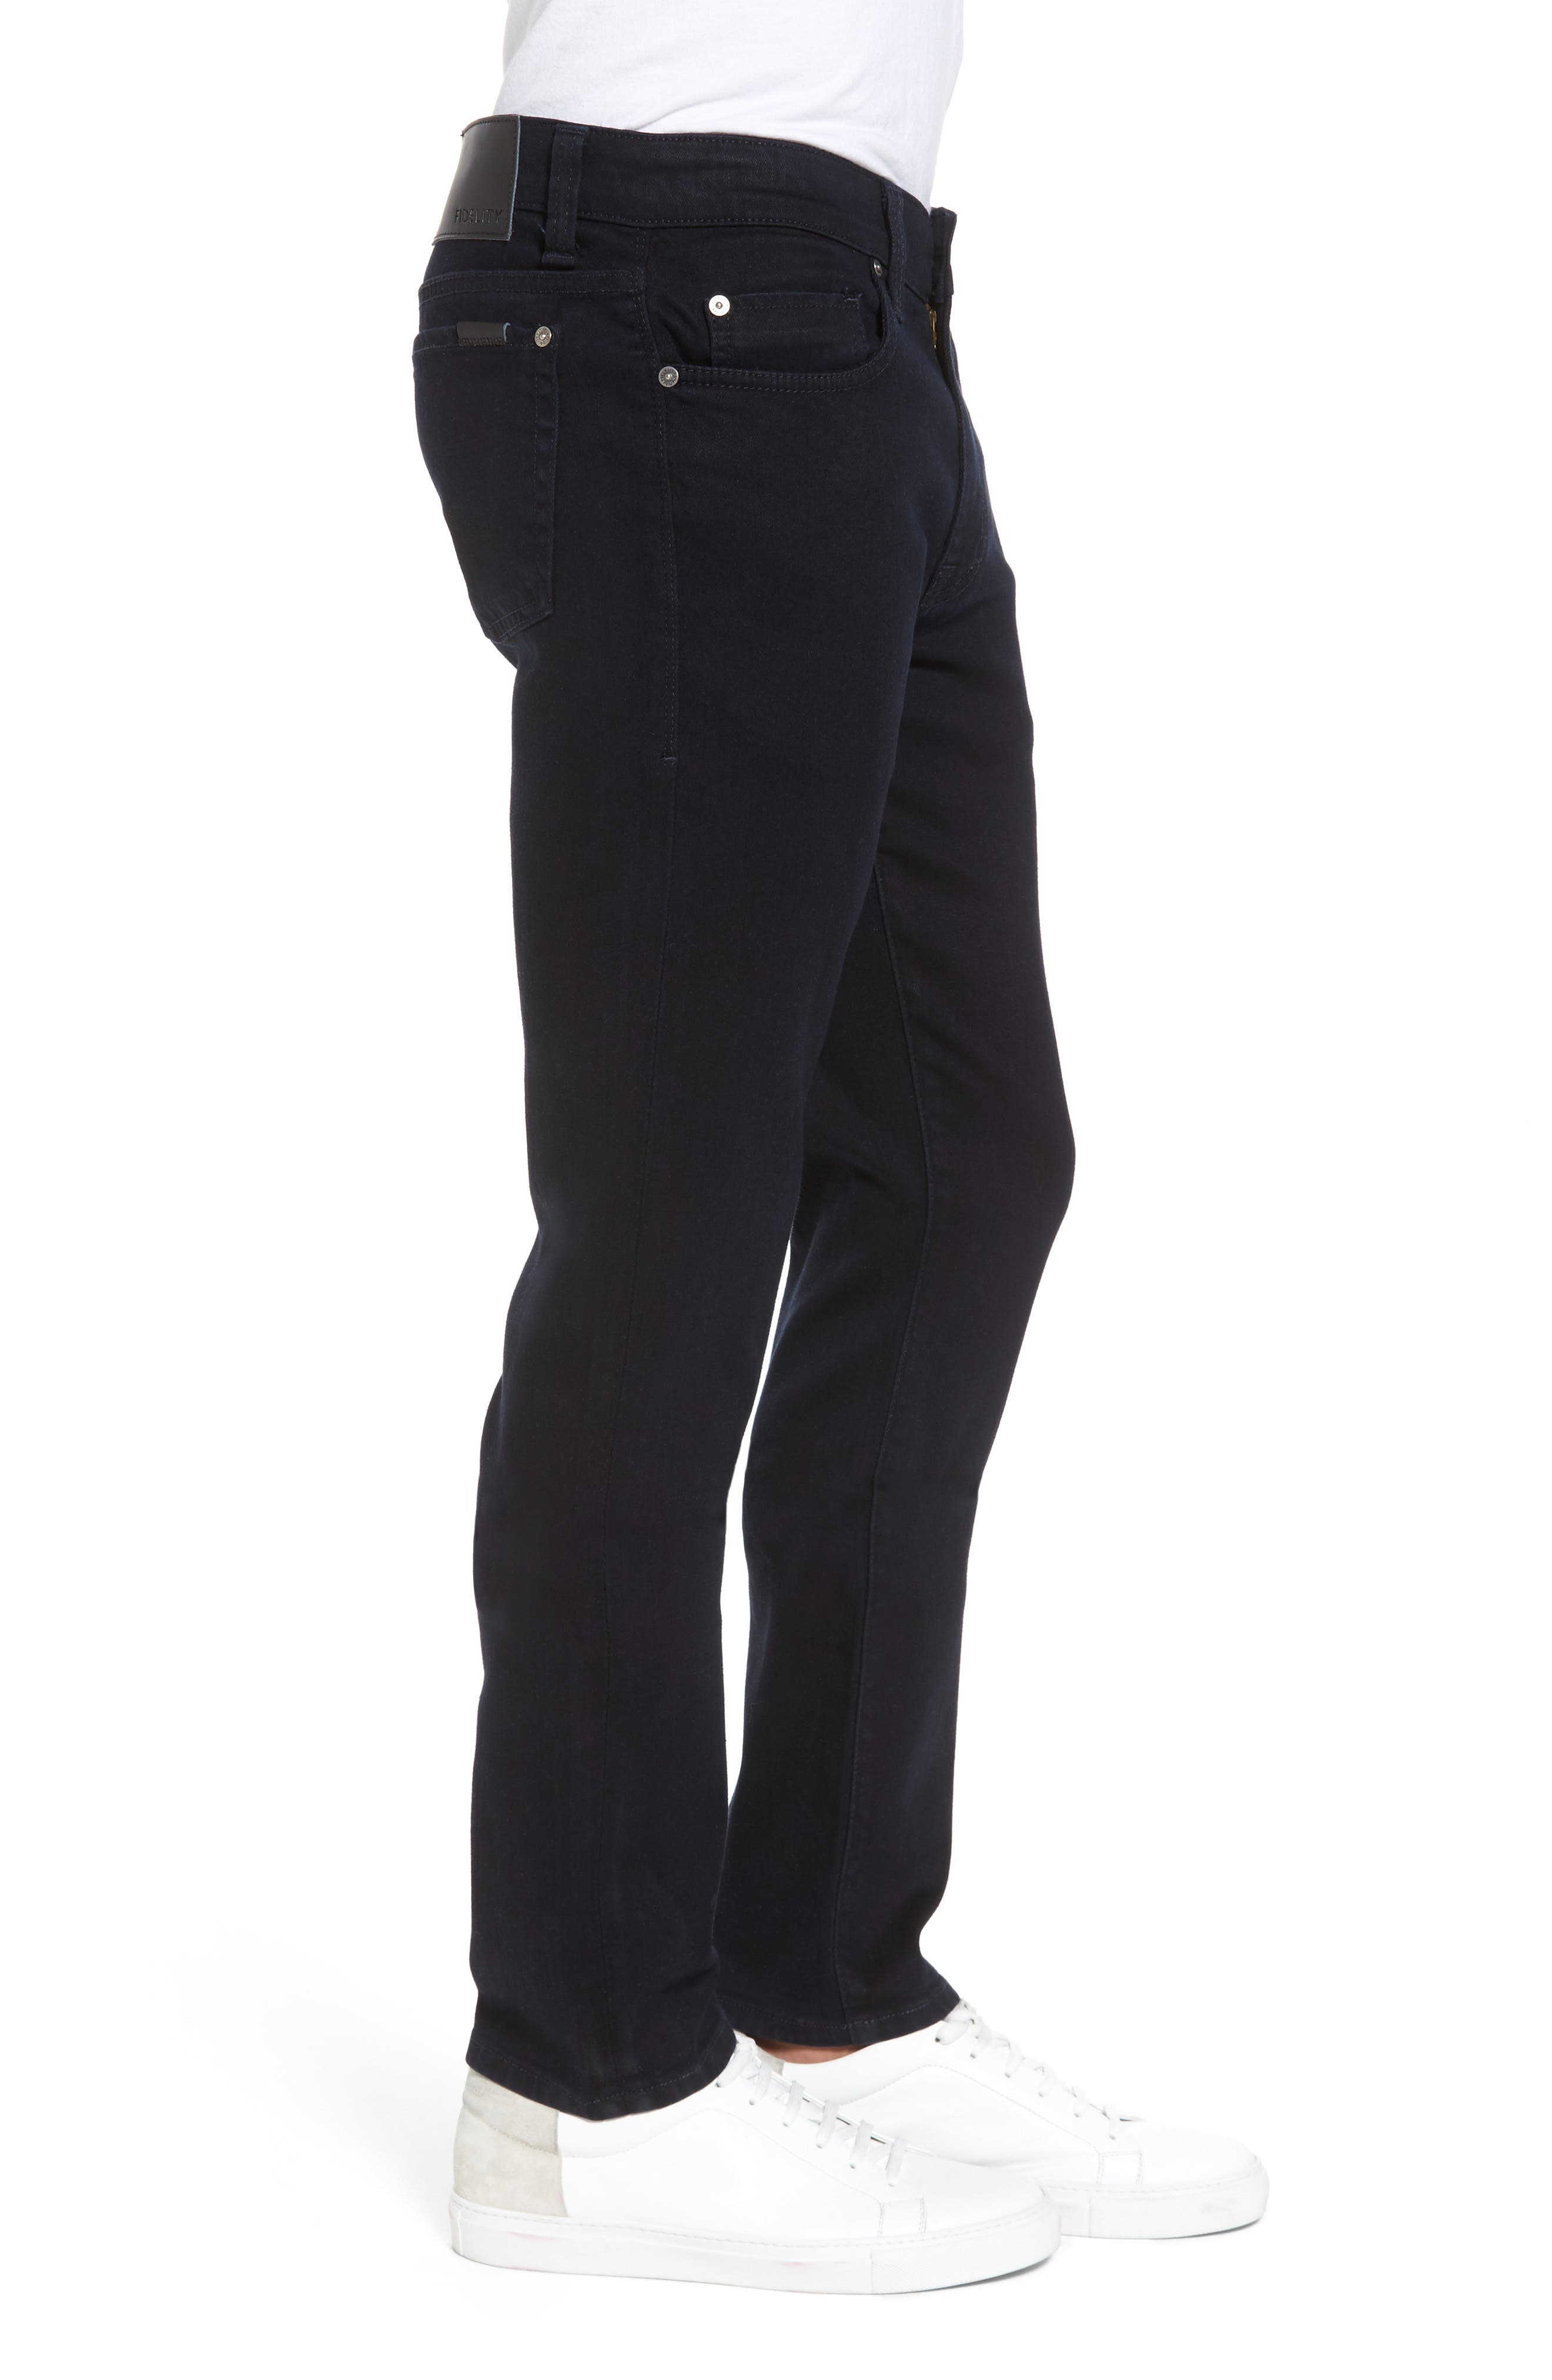 Torino Slim Fit Jeans,                             Alternate thumbnail 3, color,                             EVERBLUE